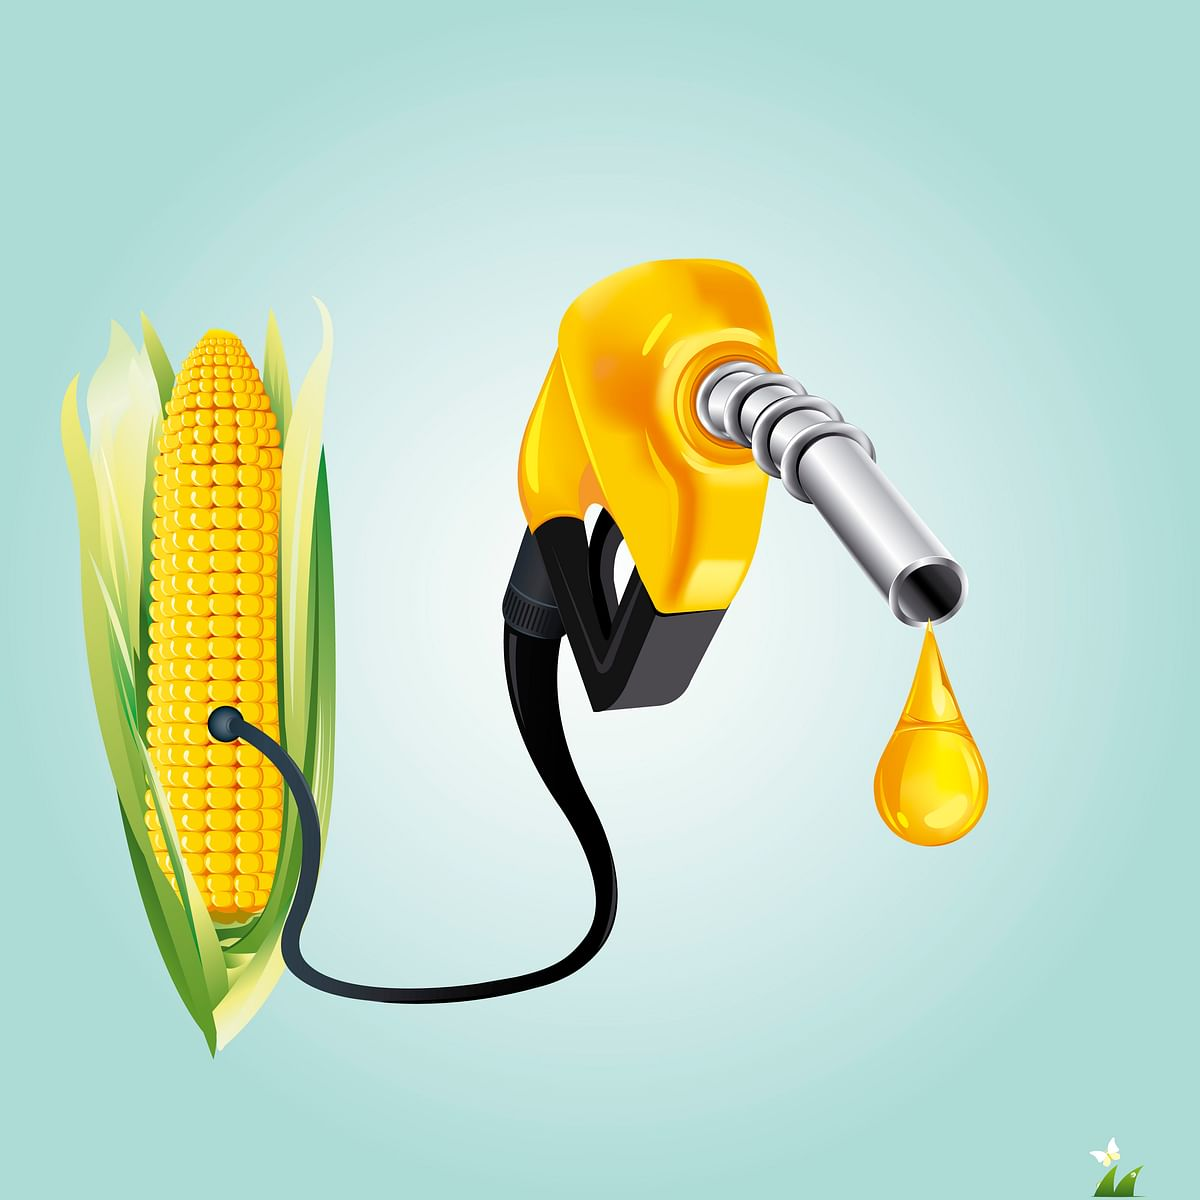 Most of the ethanol produced currently comes from sugarcane. (Photo: iStockphoto)